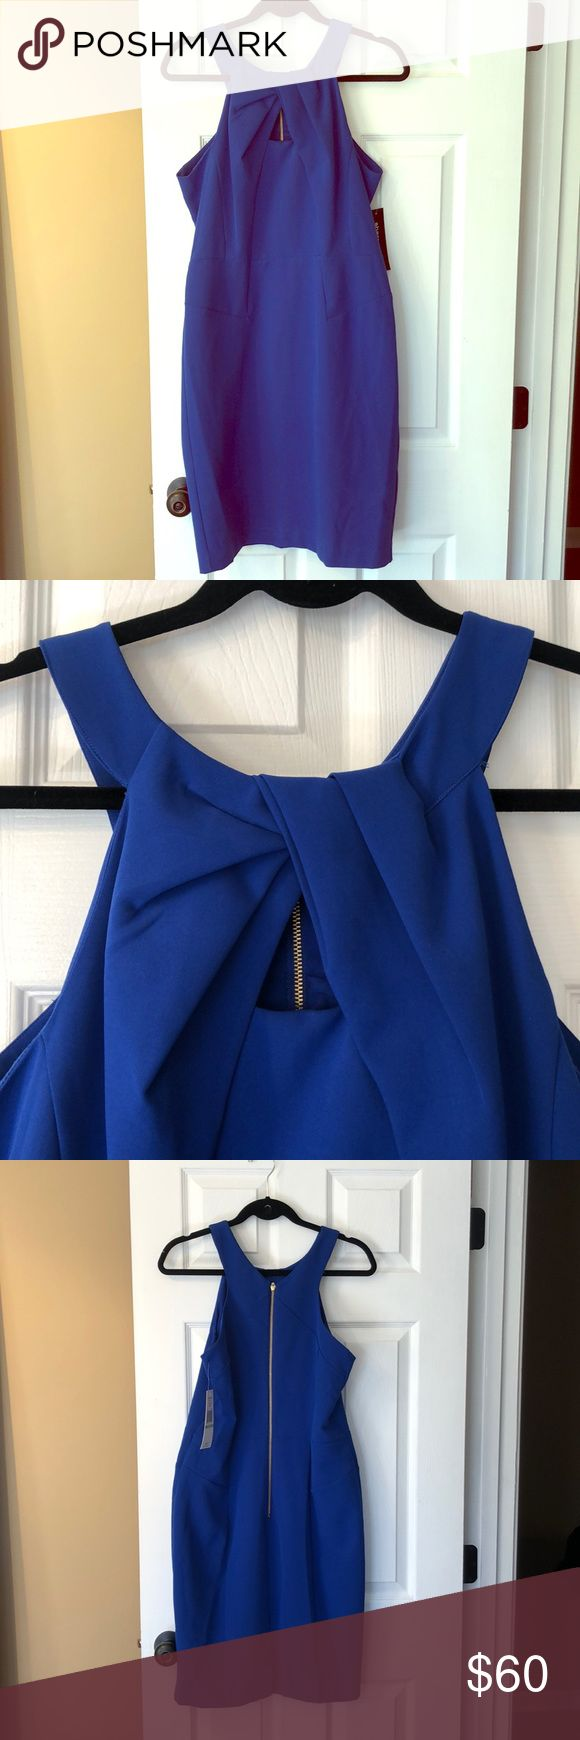 Blue Dress NWT form fitting colbalt blue dress. Cut out triangle in front on chest. Gold zipper, missing small part at bottom but still zips up (see picture). Perfect for wedding season! Sharagano Dresses Midi